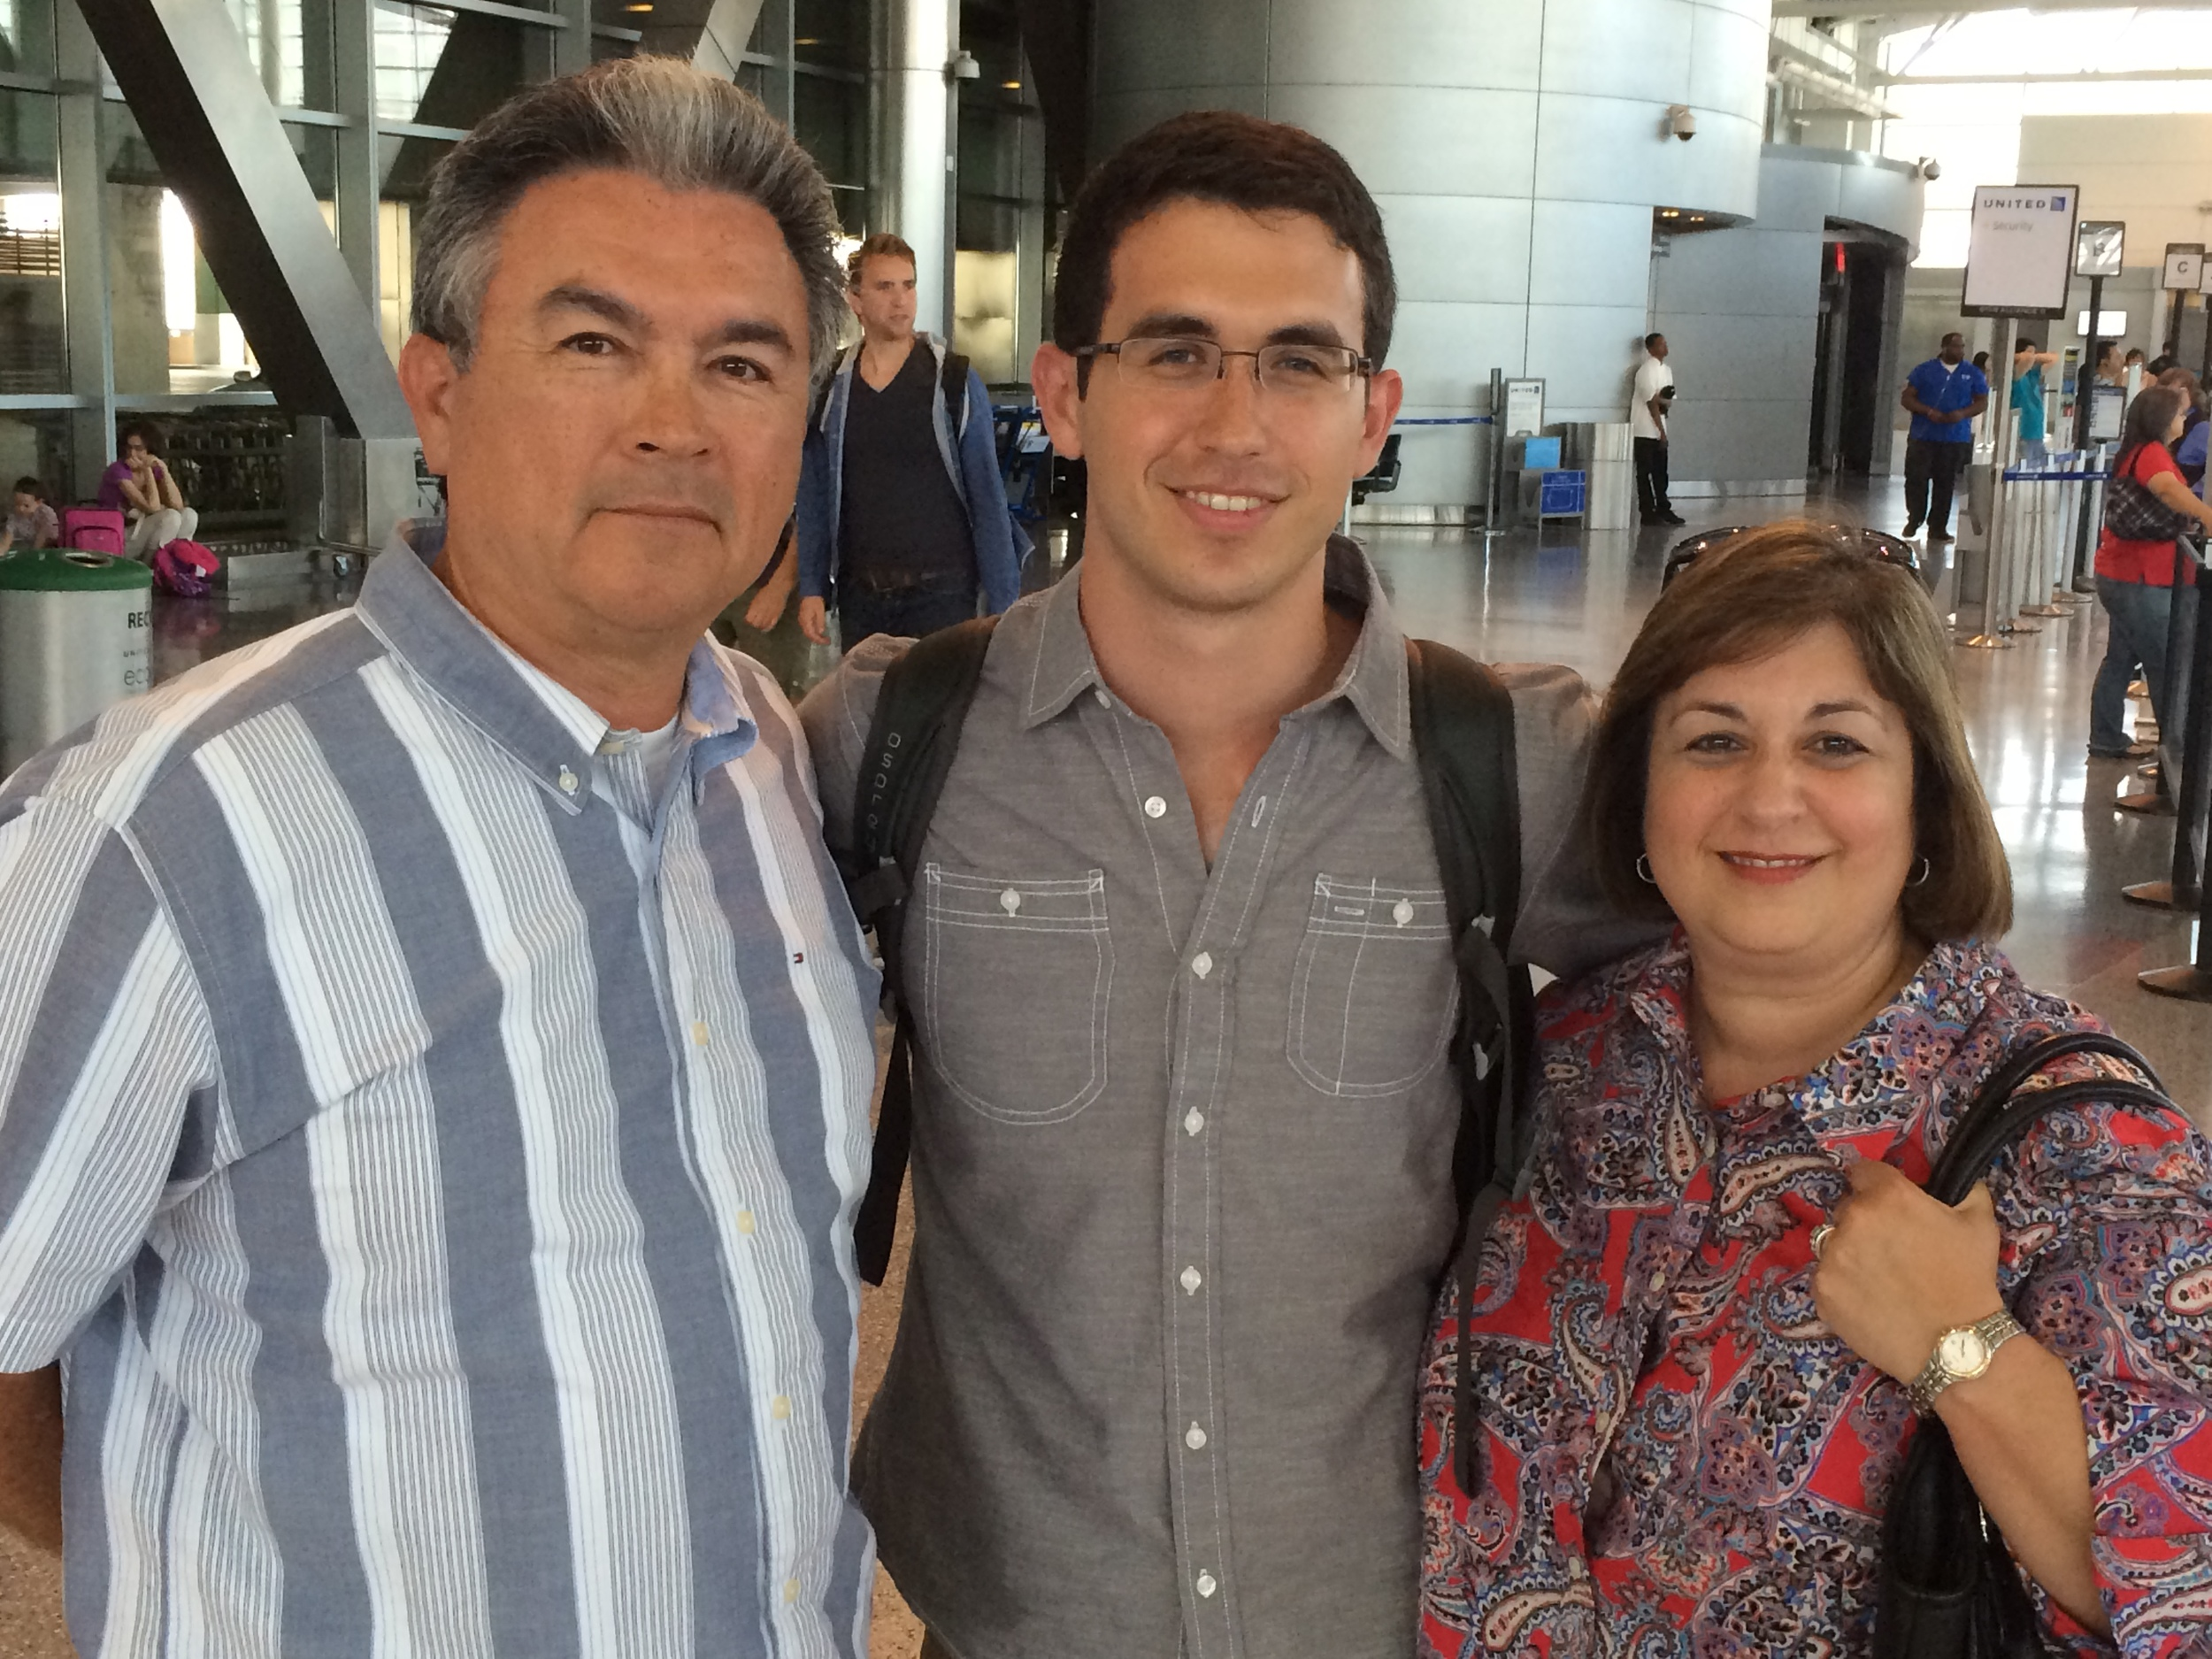 Adios Mom and Dad! See you in a year!